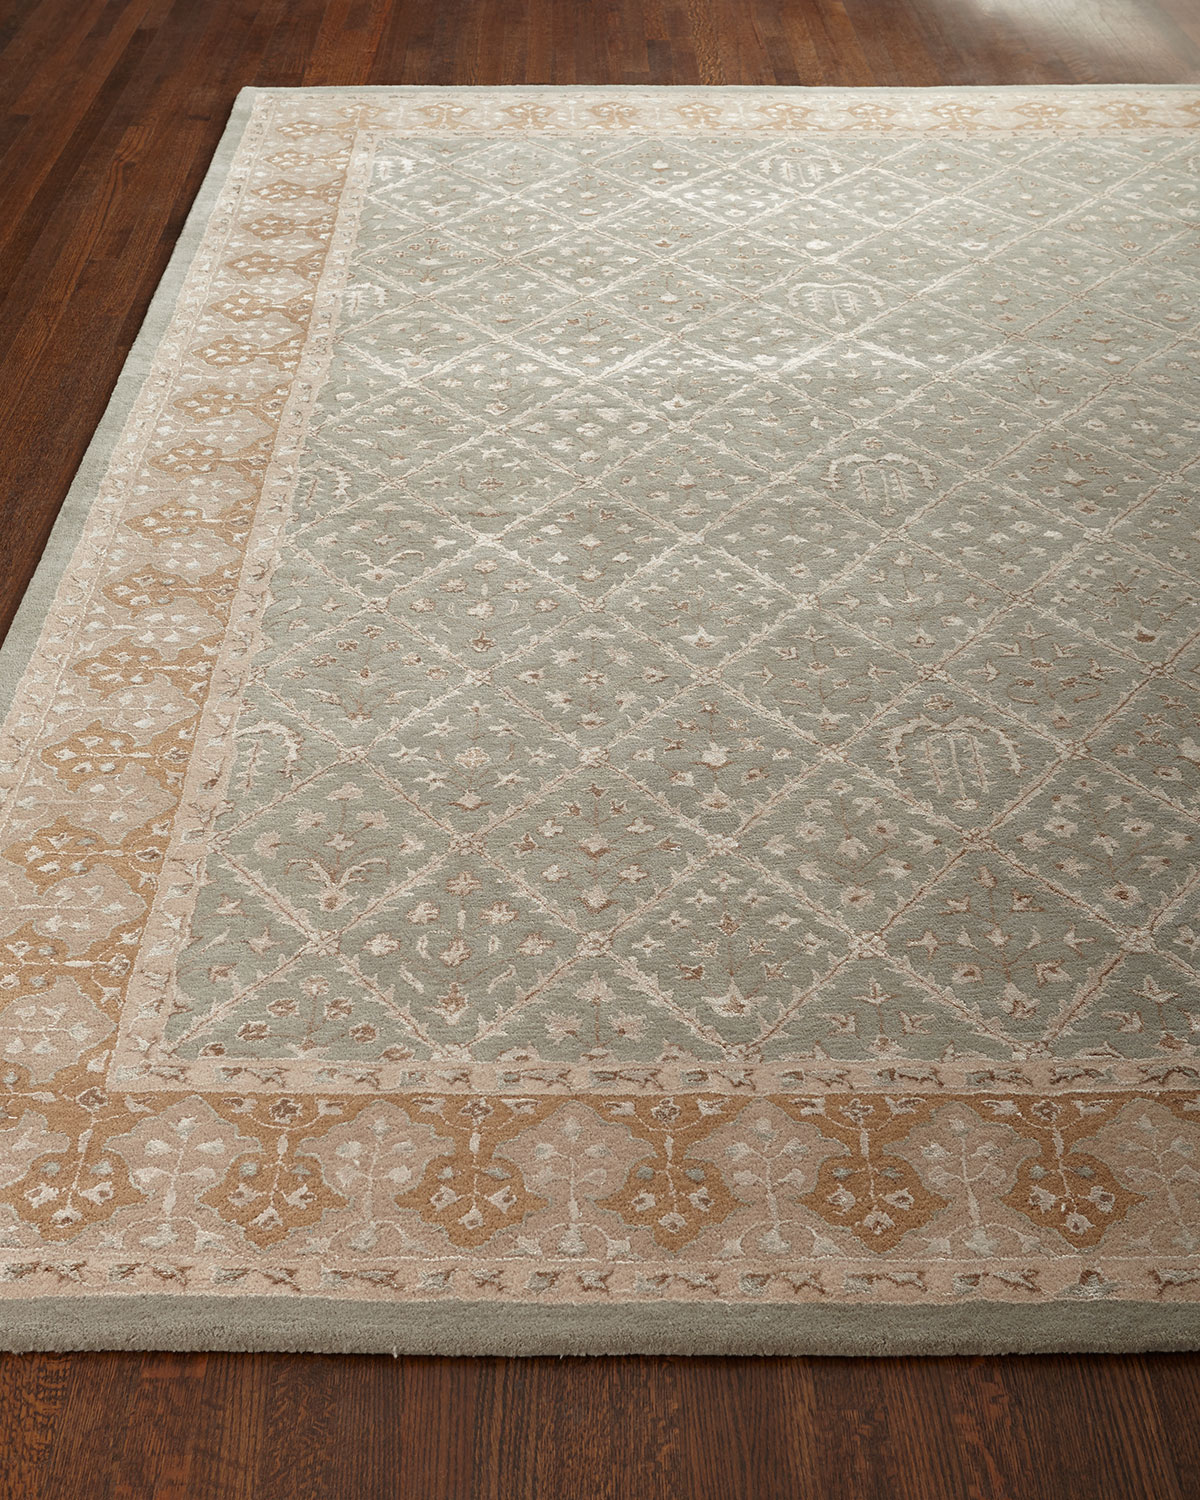 NourCouture Diamond Field Rug, 8' x 11'